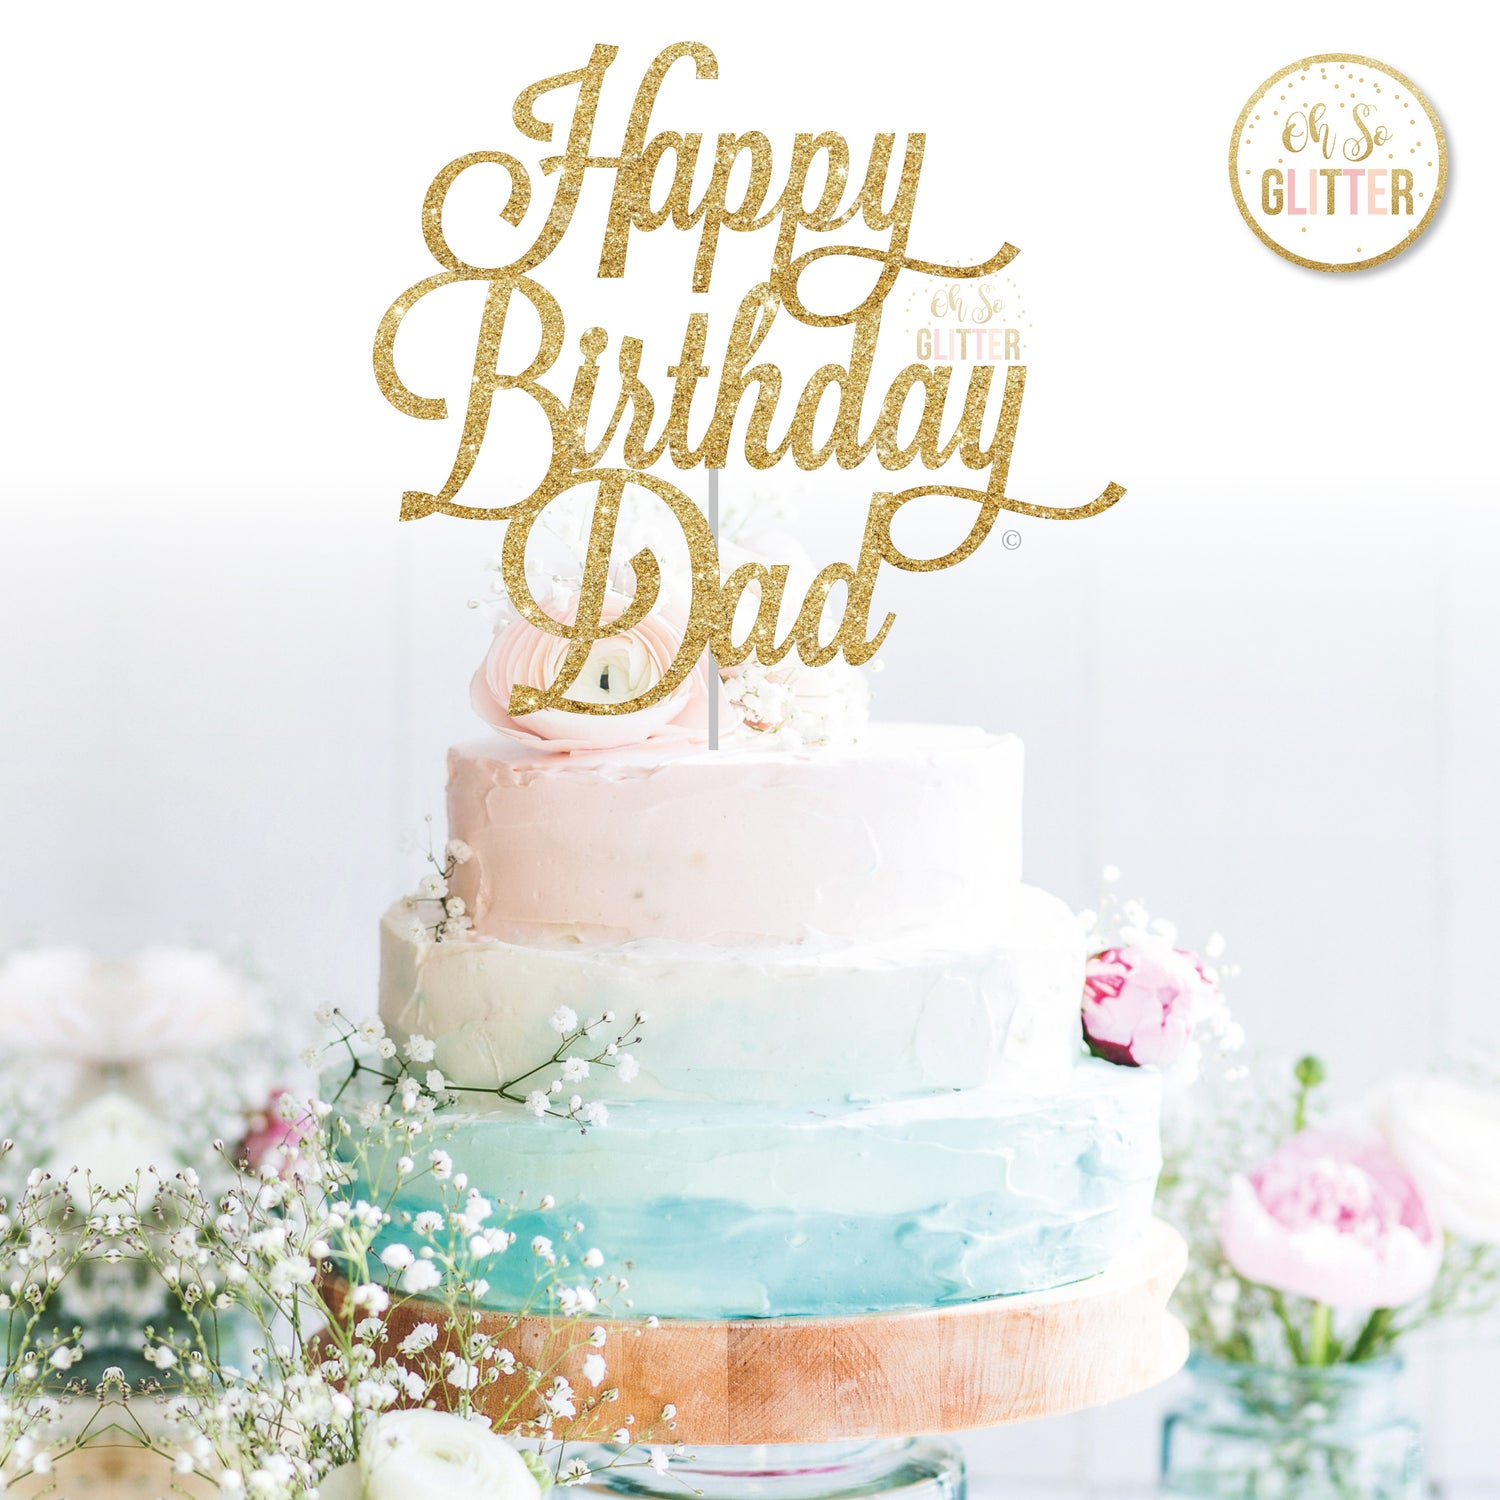 Enjoyable Happy Birthday Dad Cake Topper Oh So Glitter Funny Birthday Cards Online Fluifree Goldxyz